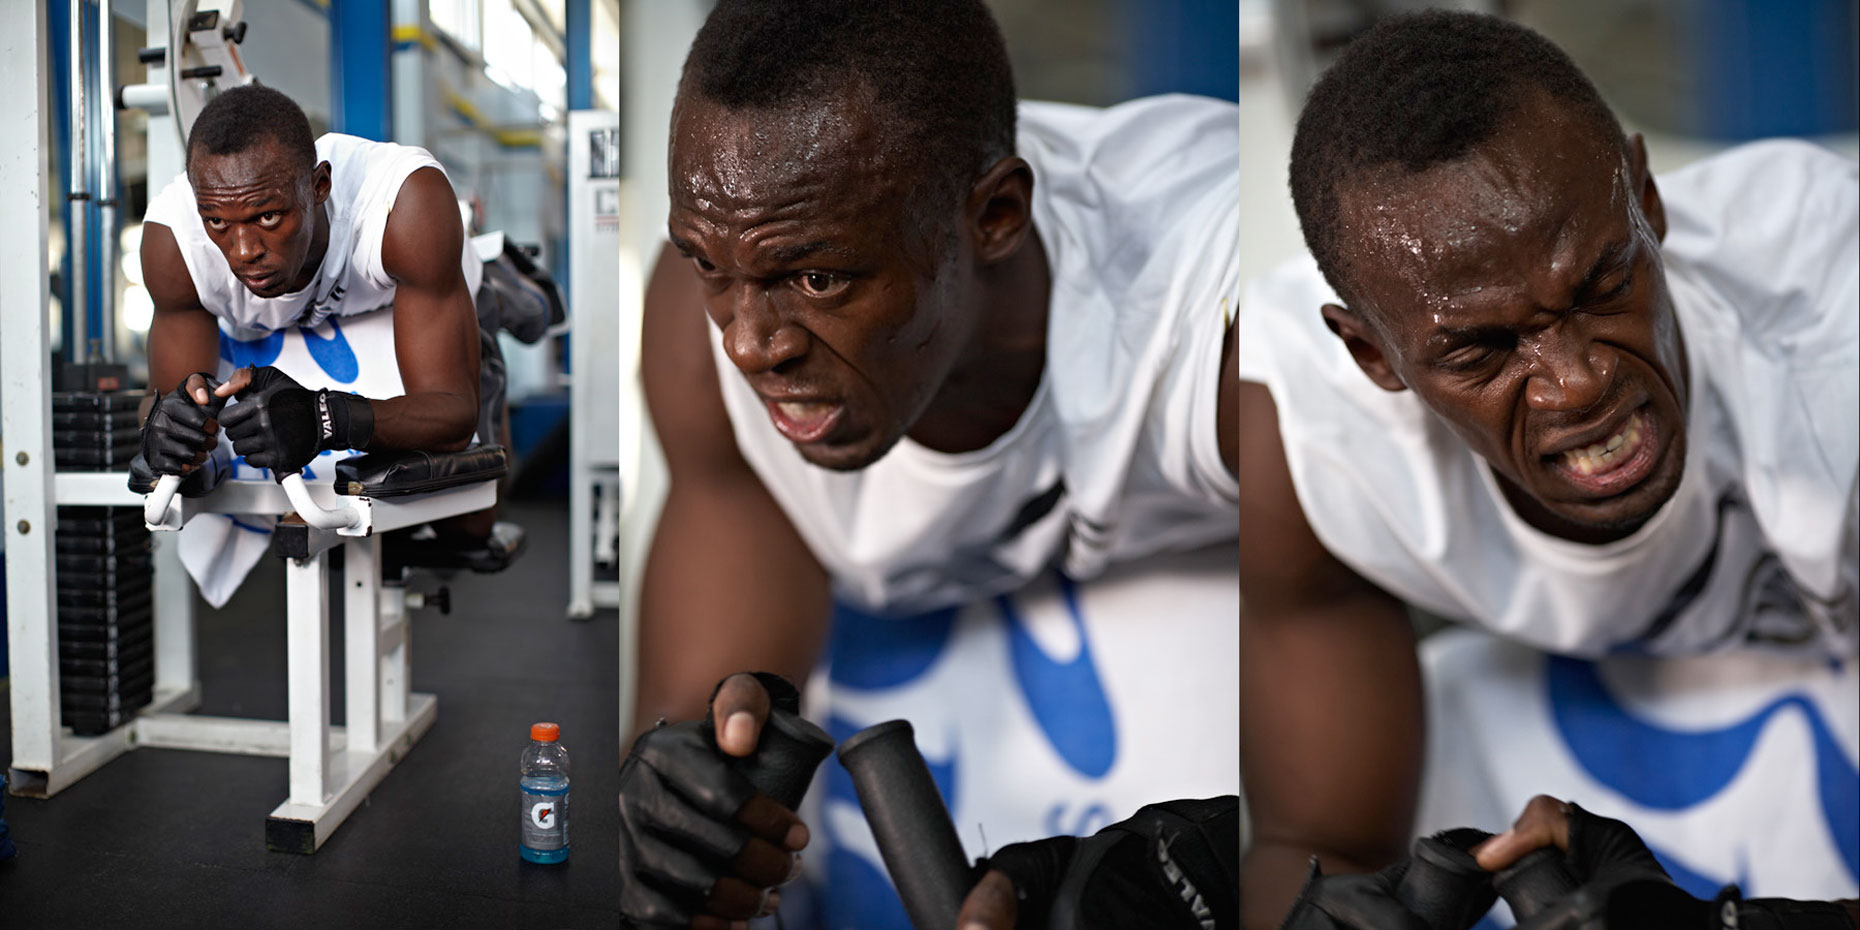 Usain Bolt workout Gatorade photo by monte isom